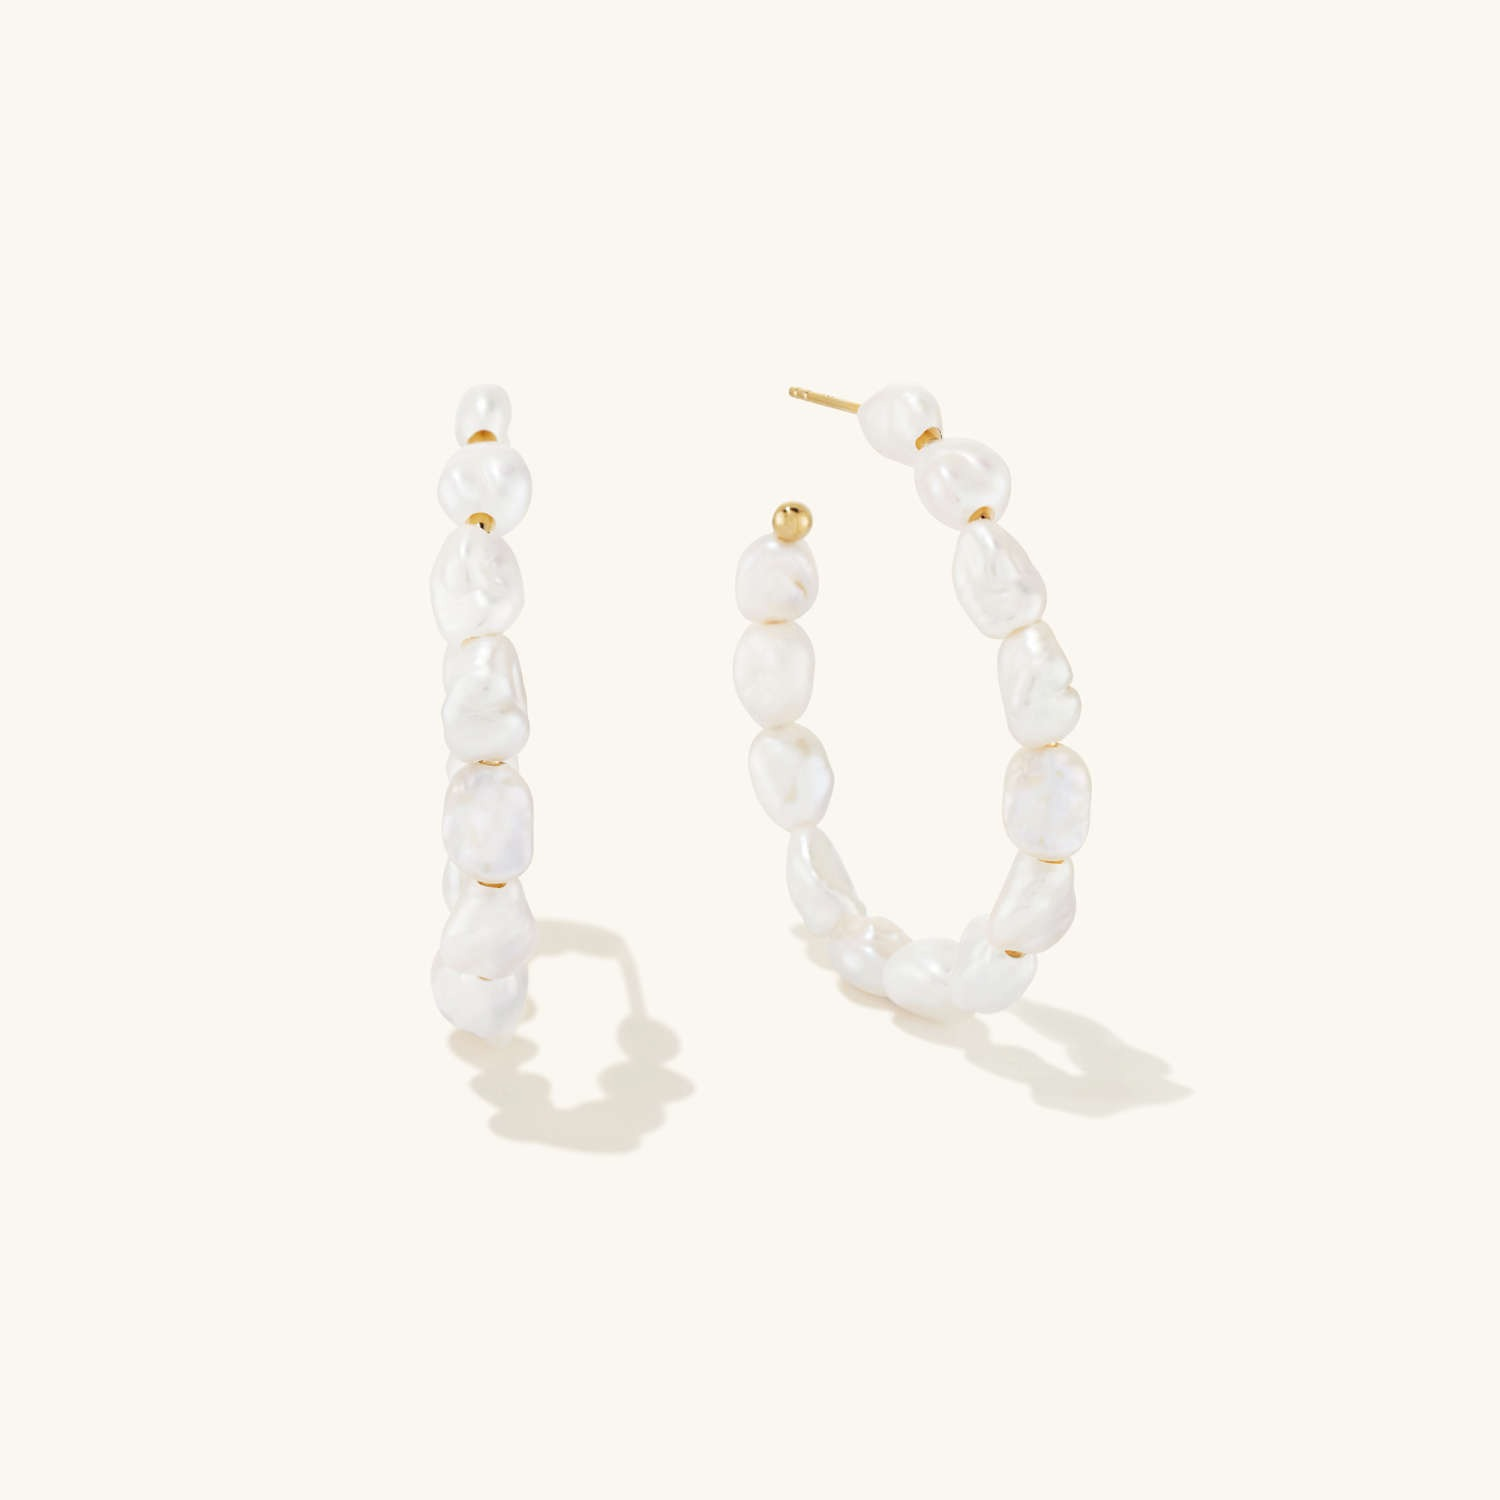 statement pearl hoop wedding earrings with gold posts